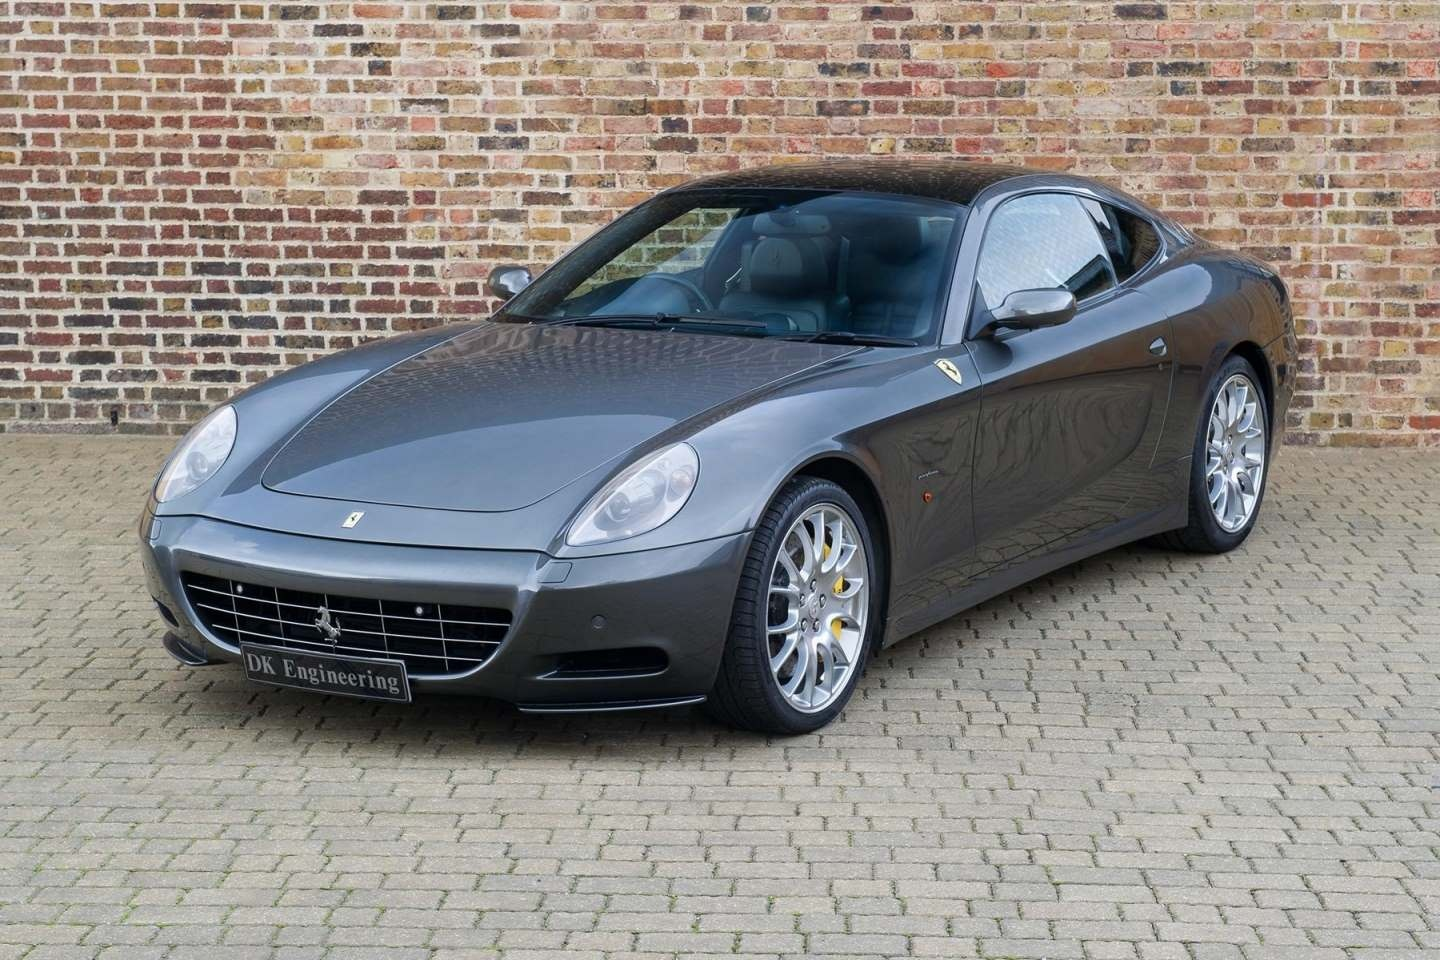 ferrari 612 scaglietti one to one for sale vehicle sales dk engineering. Black Bedroom Furniture Sets. Home Design Ideas